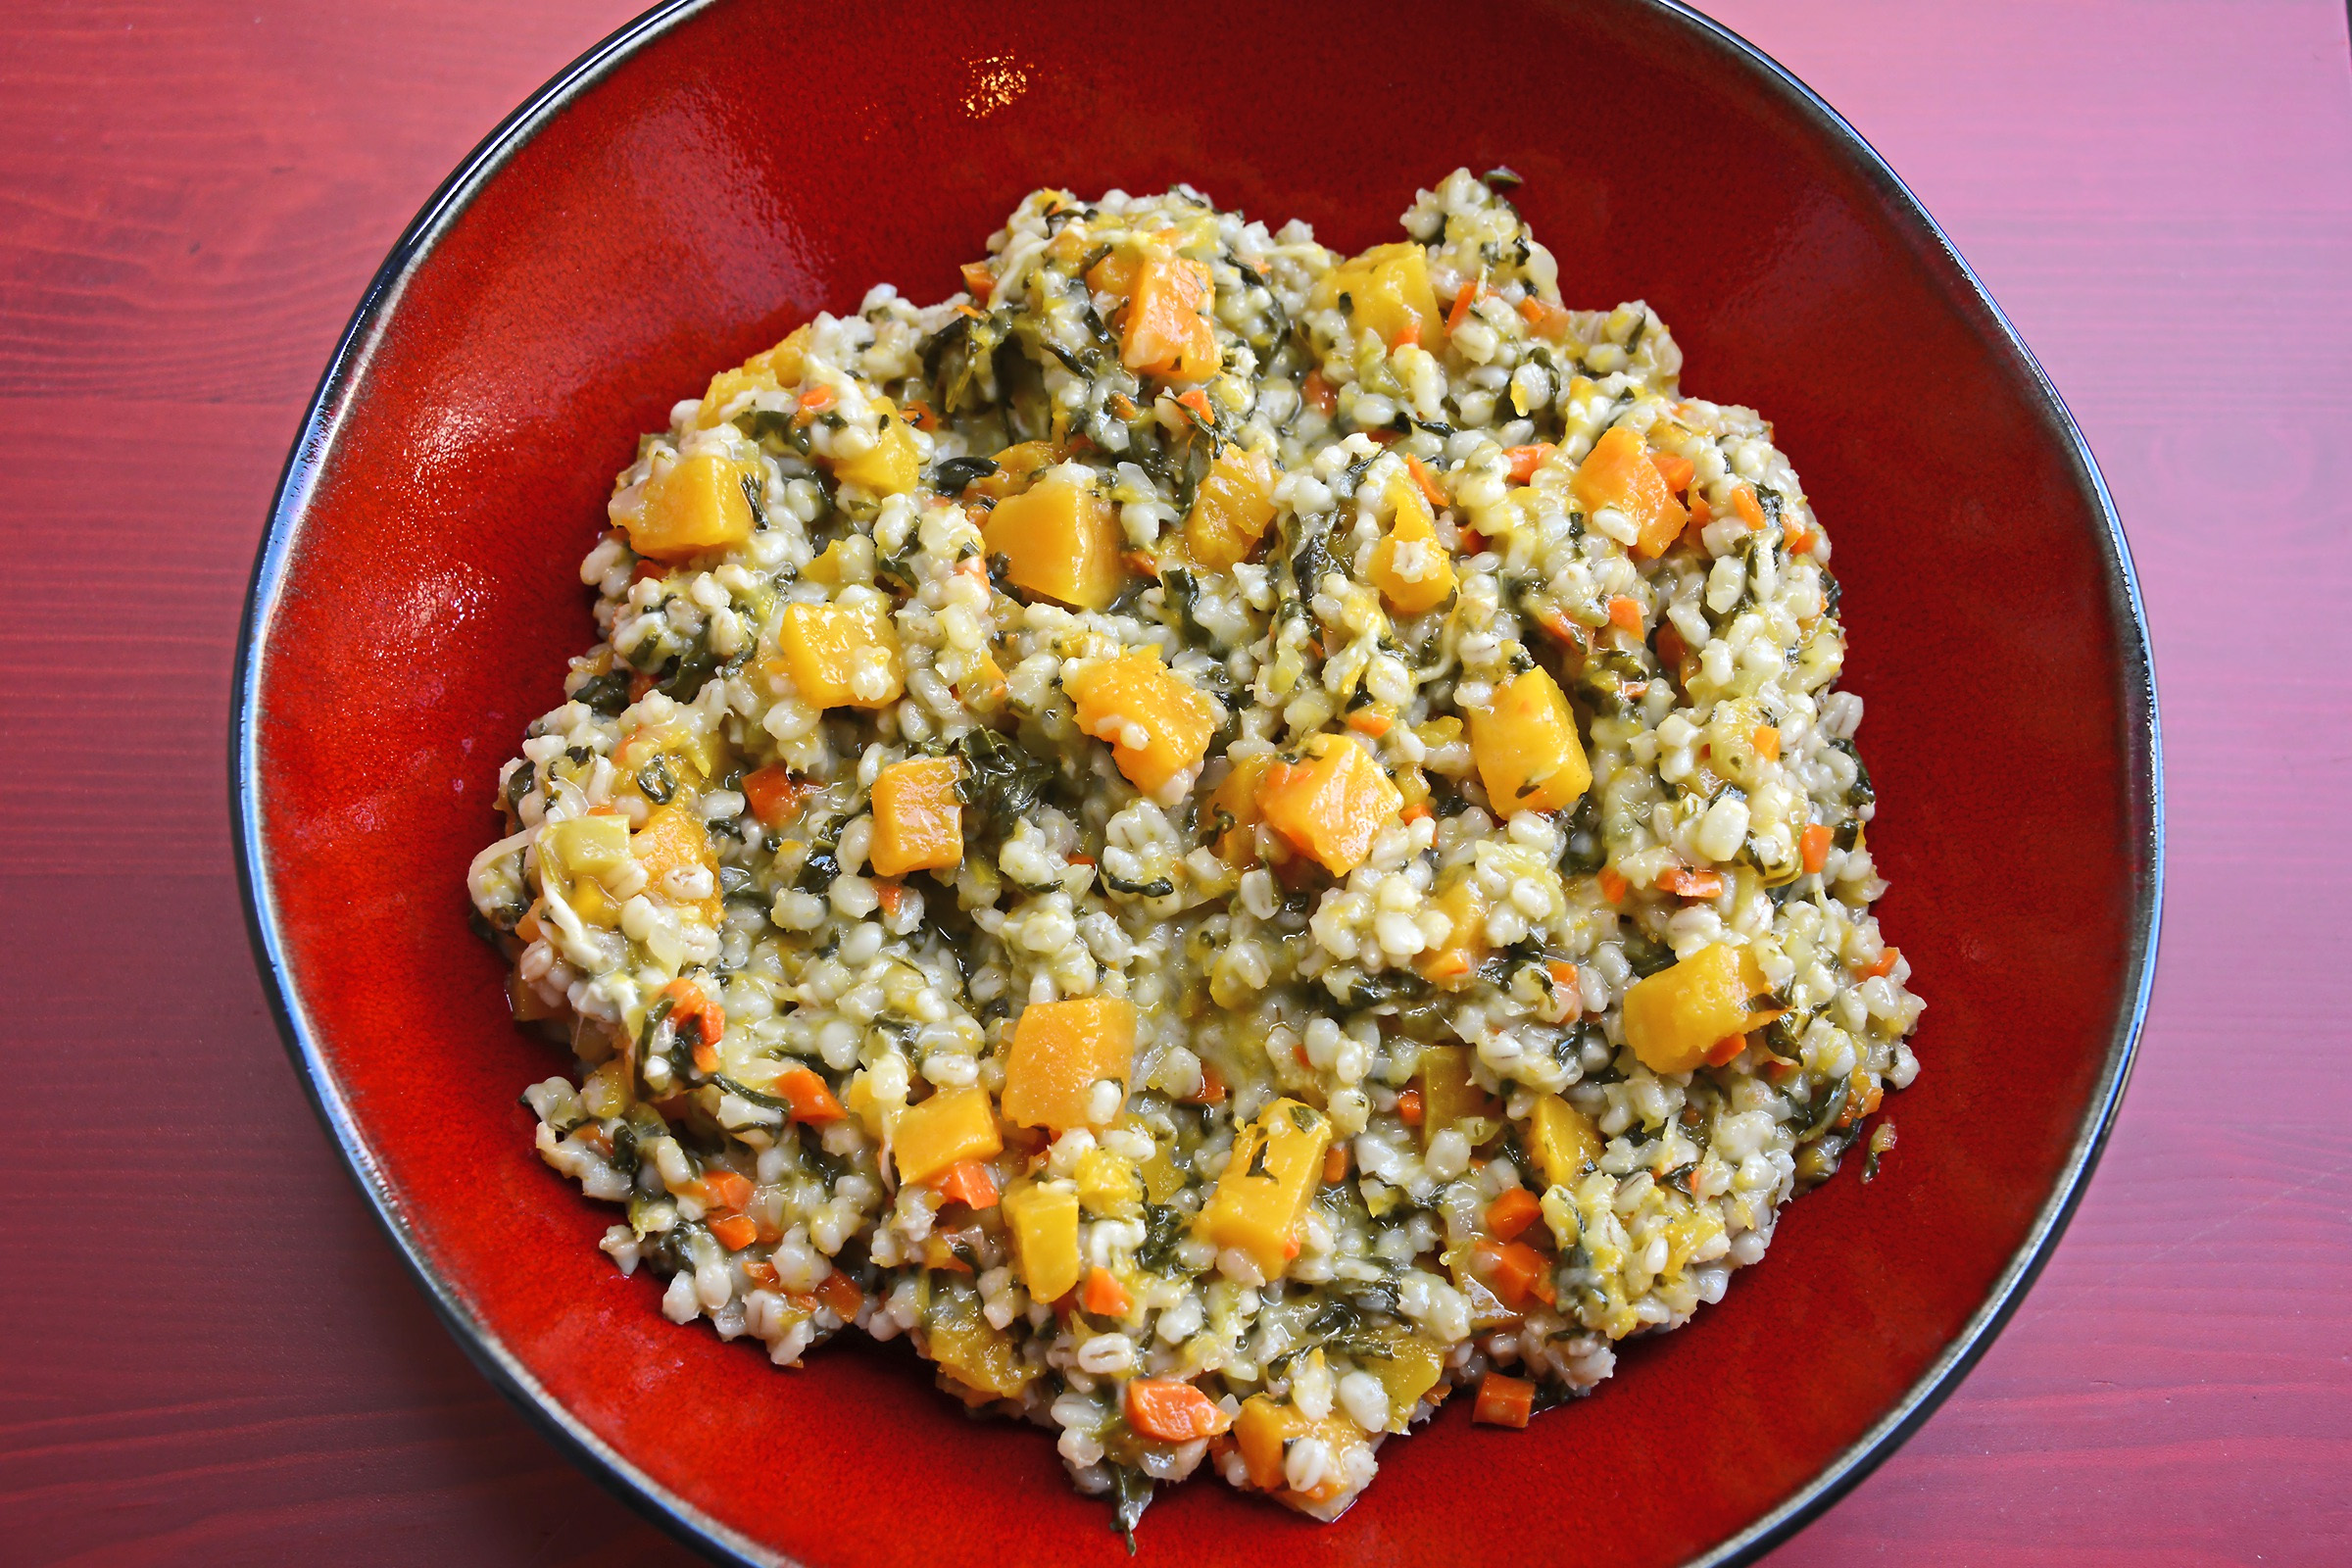 """20171101lf-Thanksgiving03-2 Barley, Kale and Butternut Squash Risotto from """"Lidia's Celebrate Like an Italian."""""""